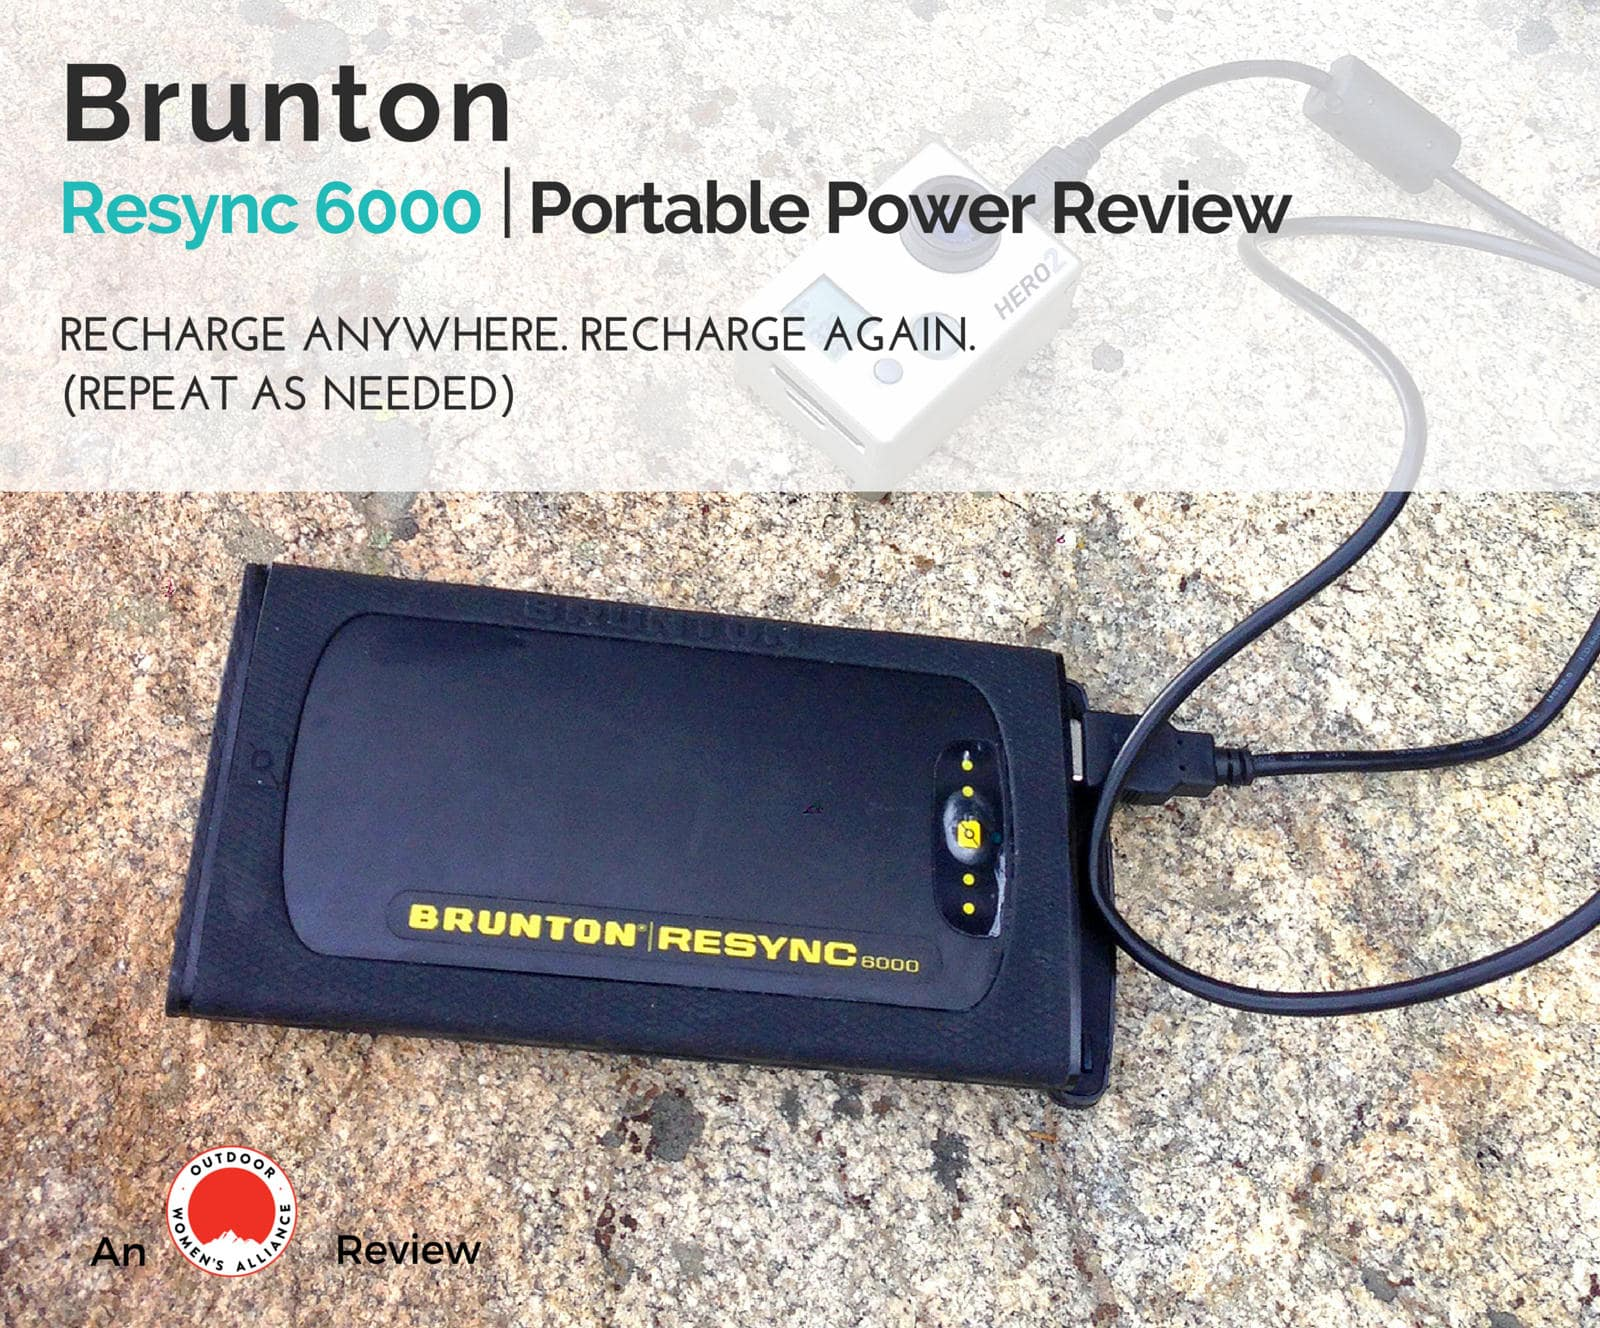 Owa Reviews Brunton Resync 6000 Solar Charger Outdoor